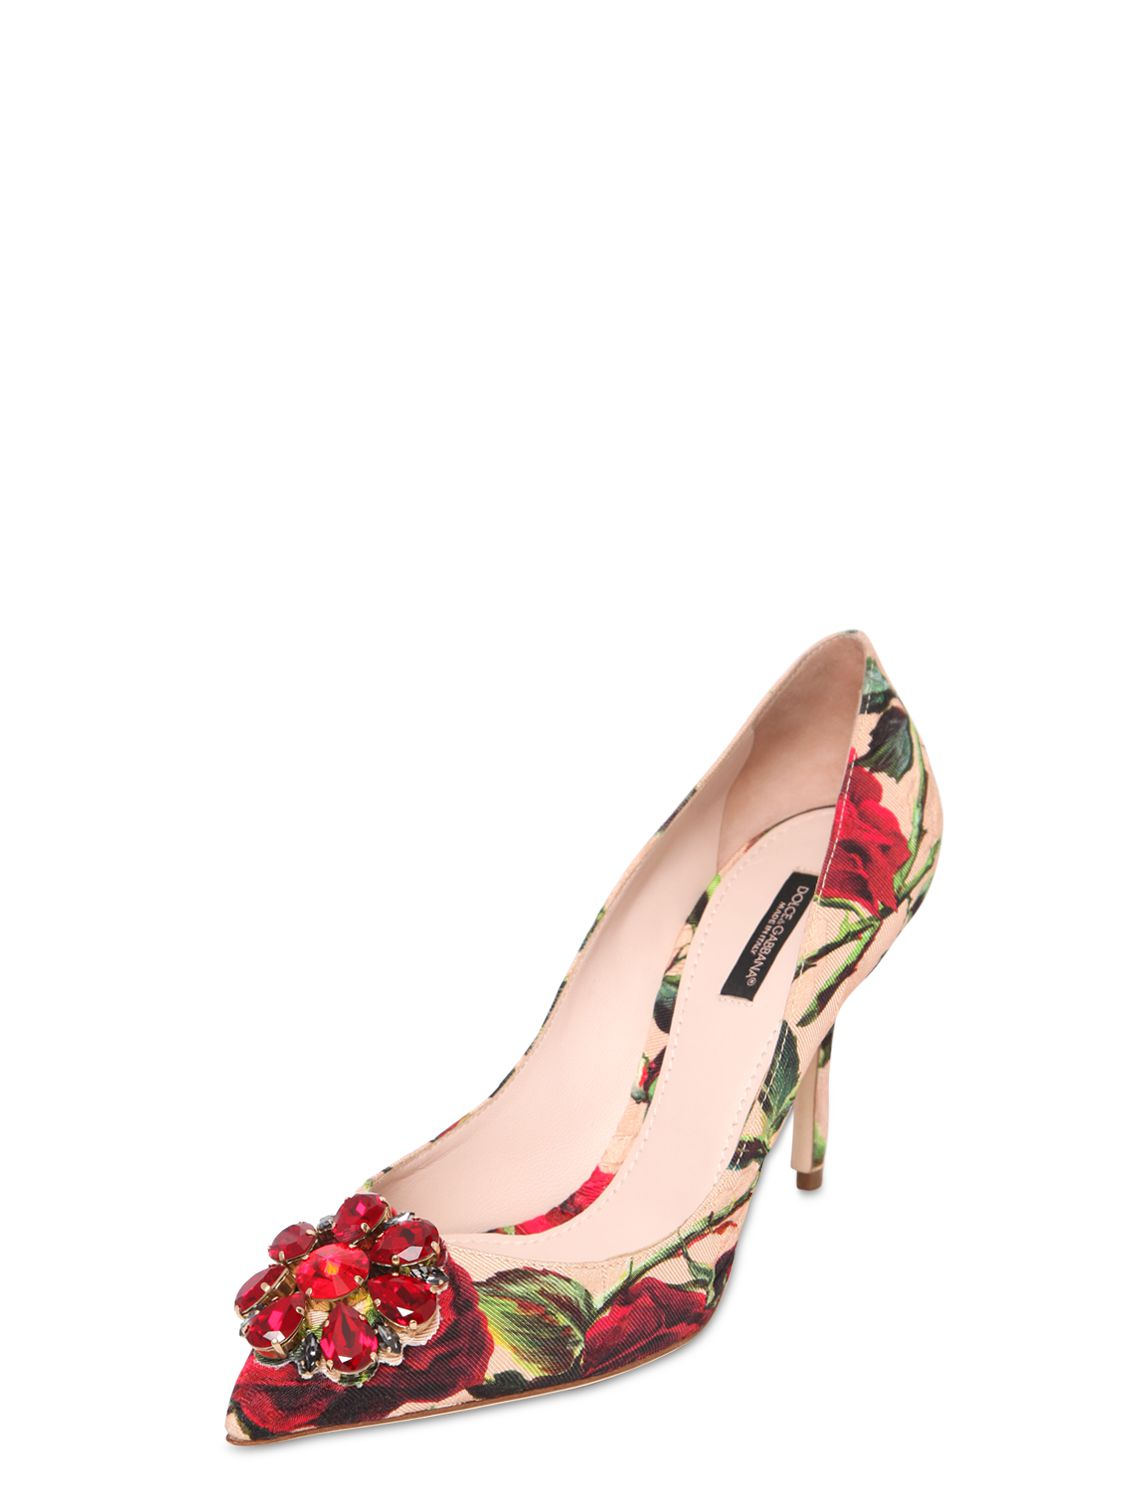 free shipping clearance store cheap sale fake Dolce & Gabbana Brocade Pointed-Toe Pumps buy cheap amazing price cheap sale choice free shipping for nice X8ekMhcme